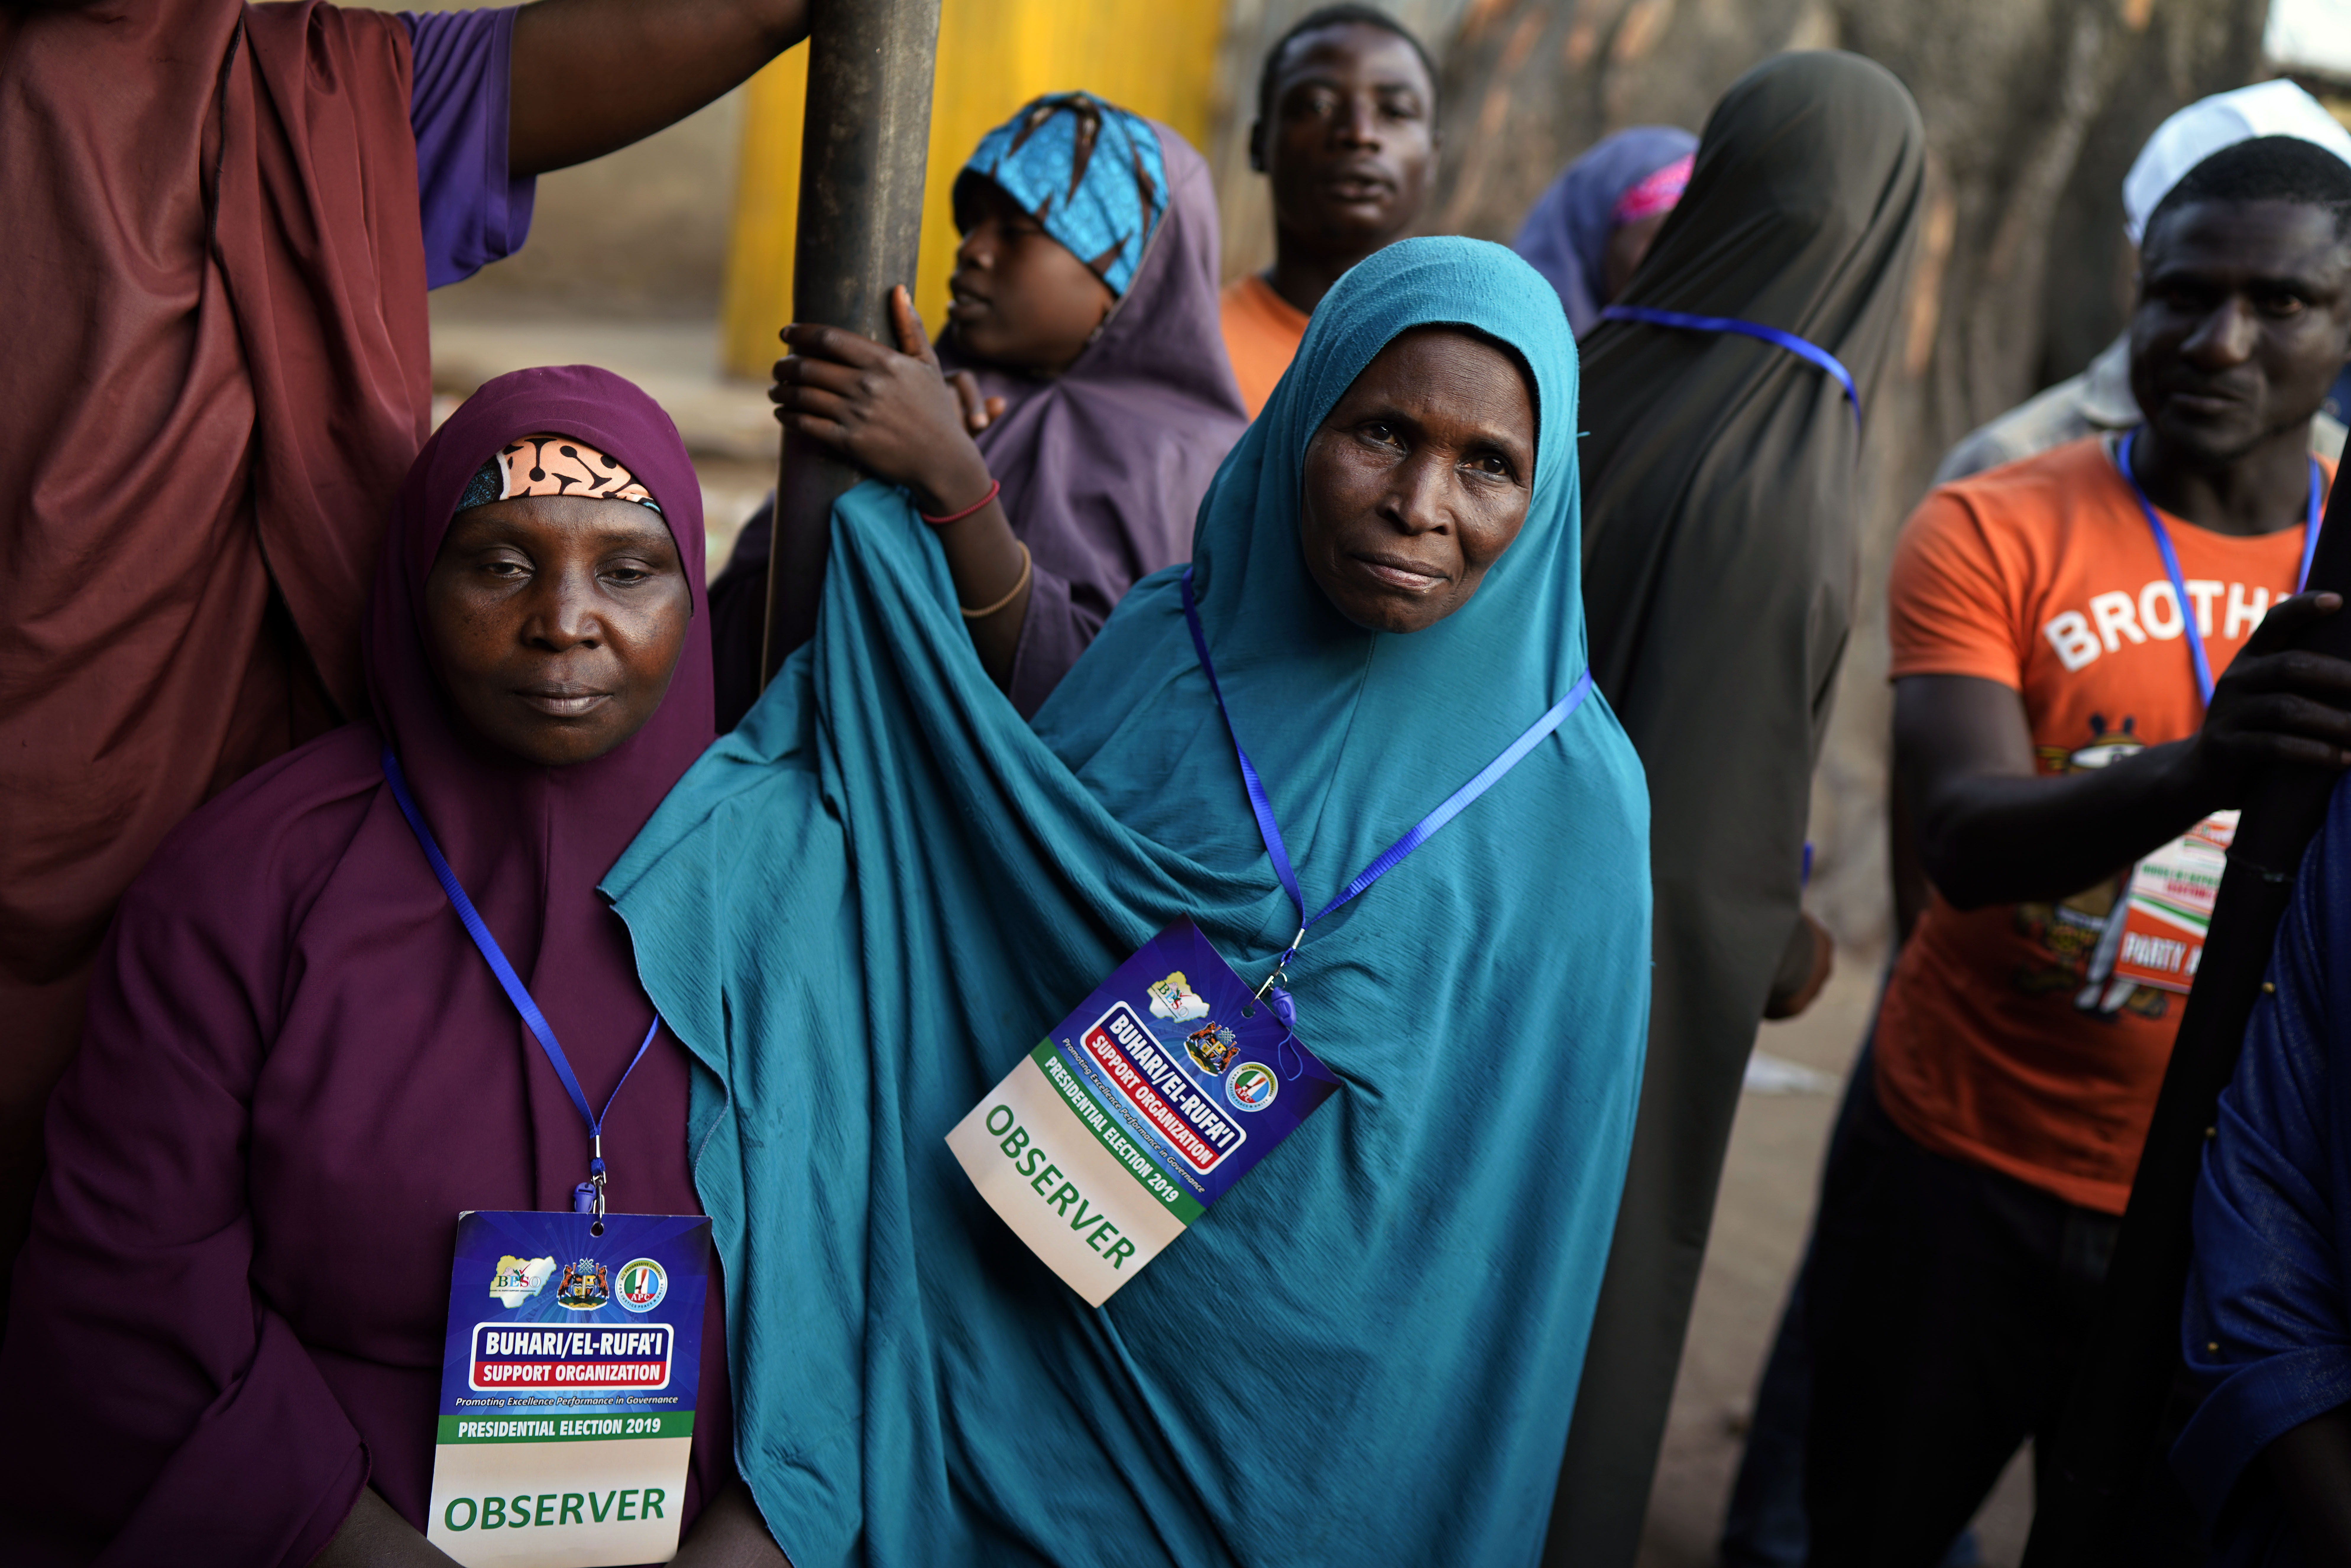 Nigerian election observers watch votes being counted in Kaduna, Nigeria, Saturday Feb. 23, 2019. Incumbent President Muhammadu Buhari is facing opposition presidential candidate Atiku Abubakar in the presidential election. (AP Photo/Jerome Delay)